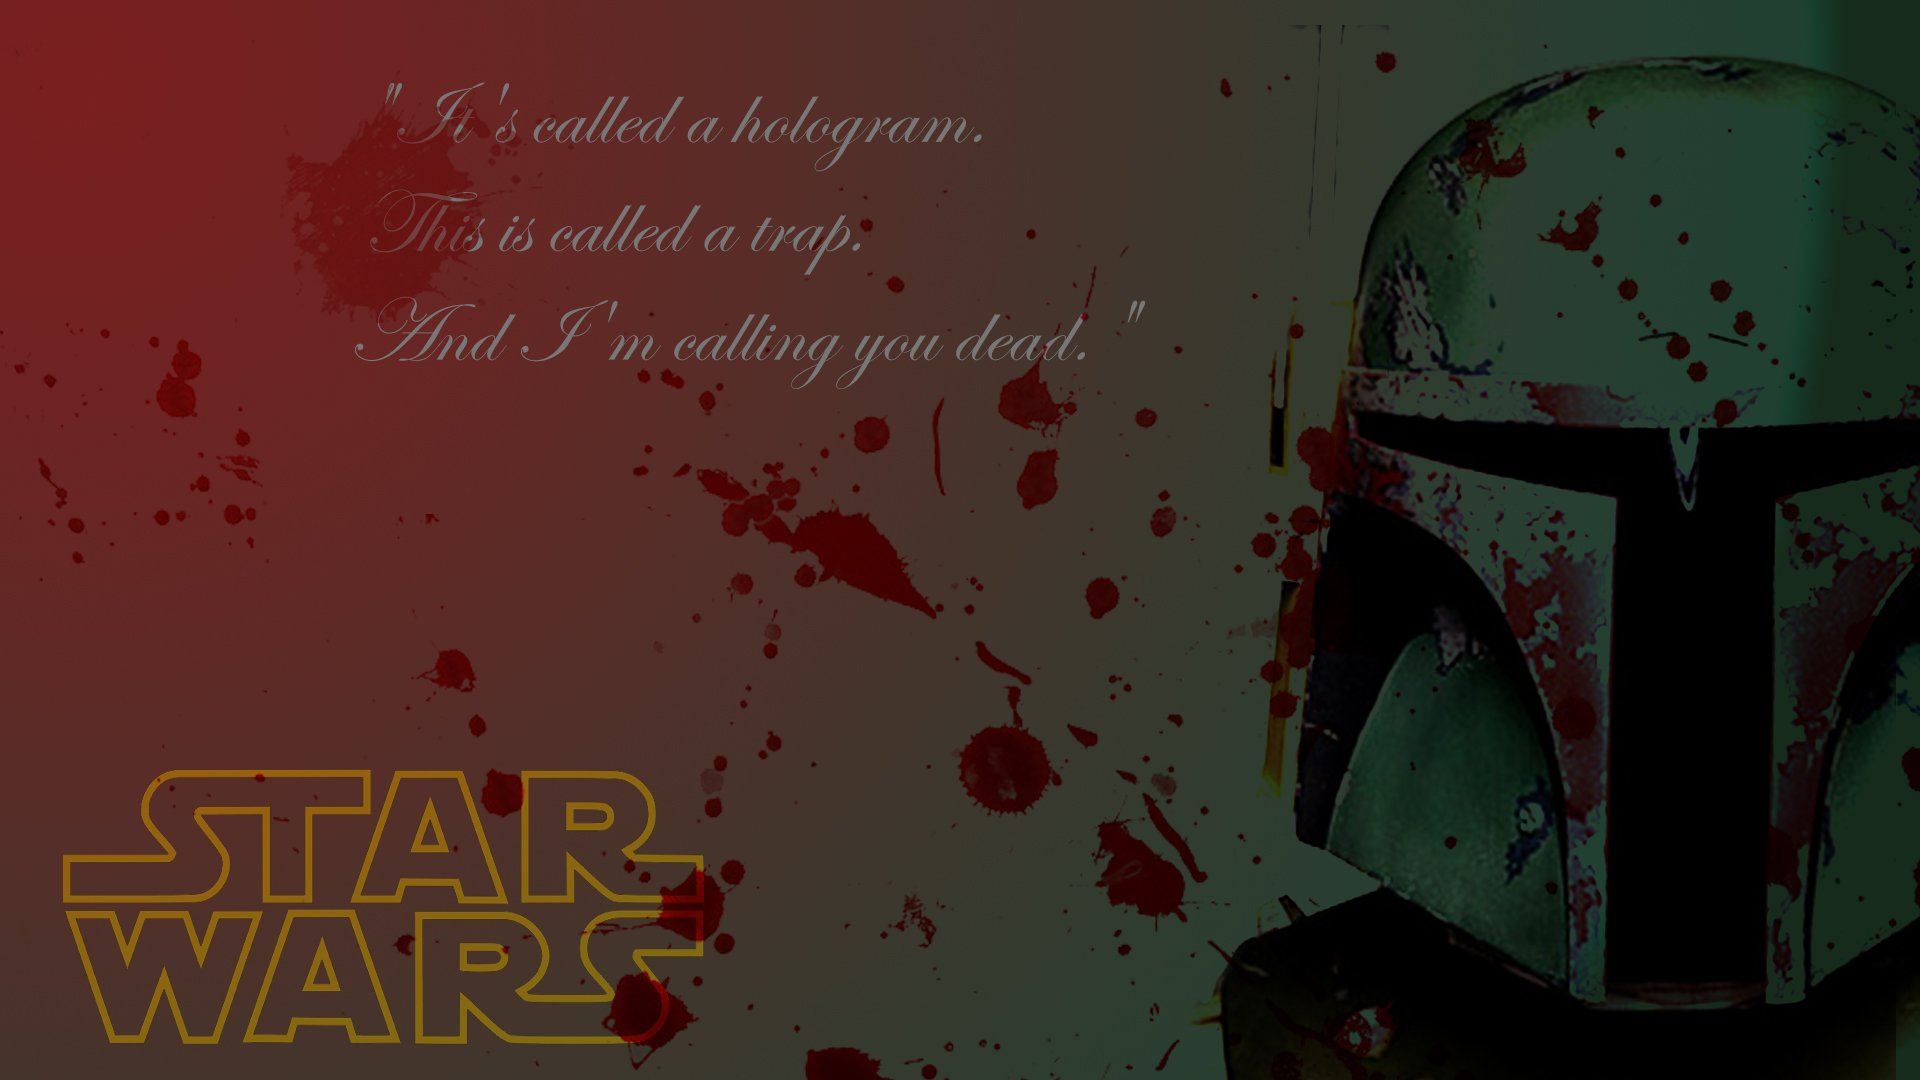 Samurai Boba Fett Wallpaper Boba fett wallpaper hd by 1920x1080